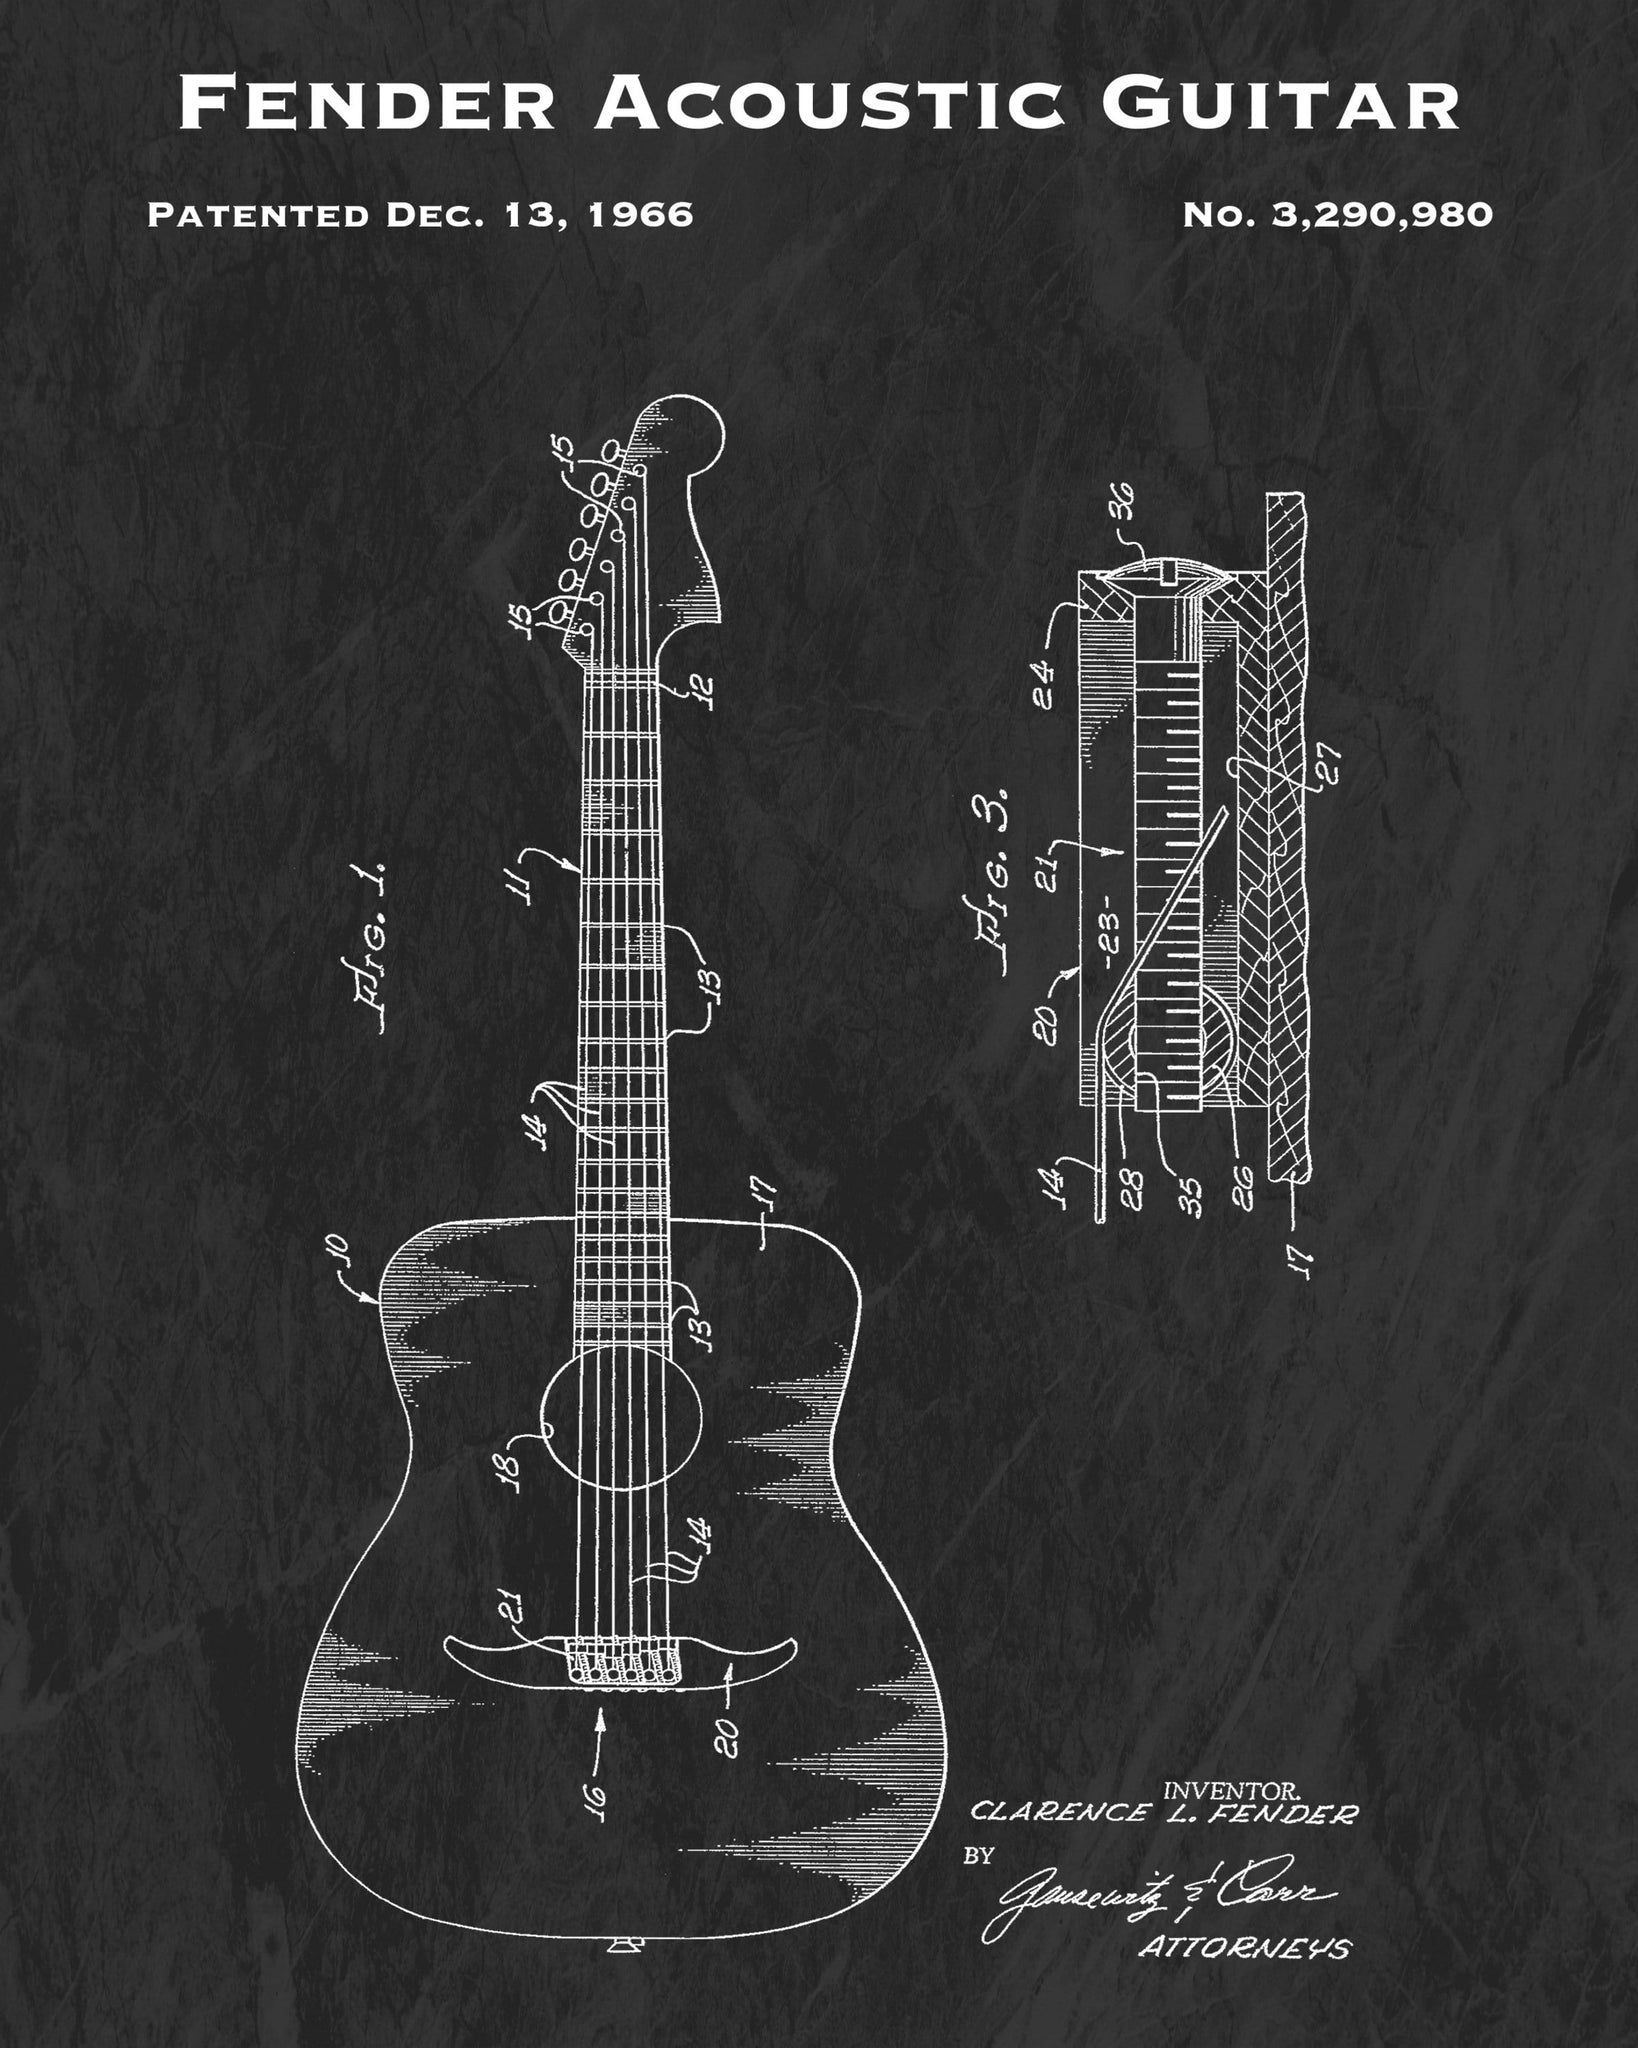 1966 Fender Acoustic Guitar Patent Art Print